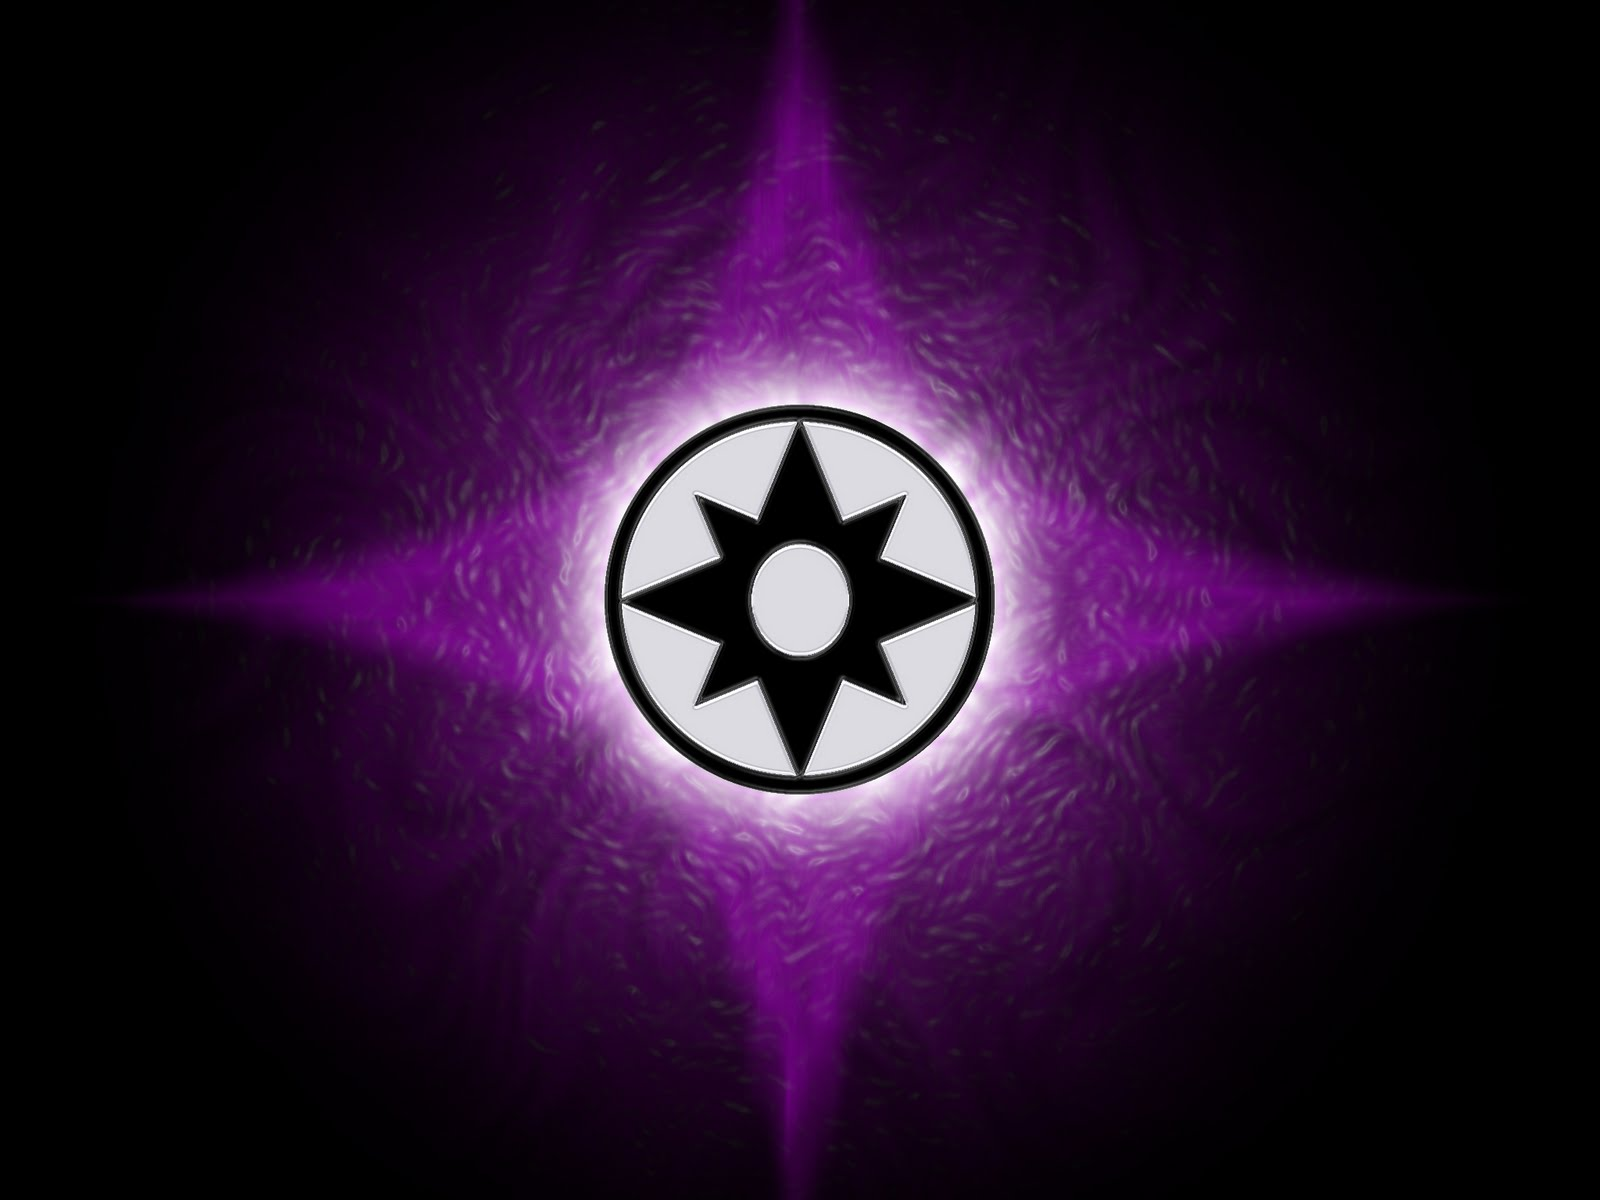 For those alone in Blackest nightViolet Lantern Logo